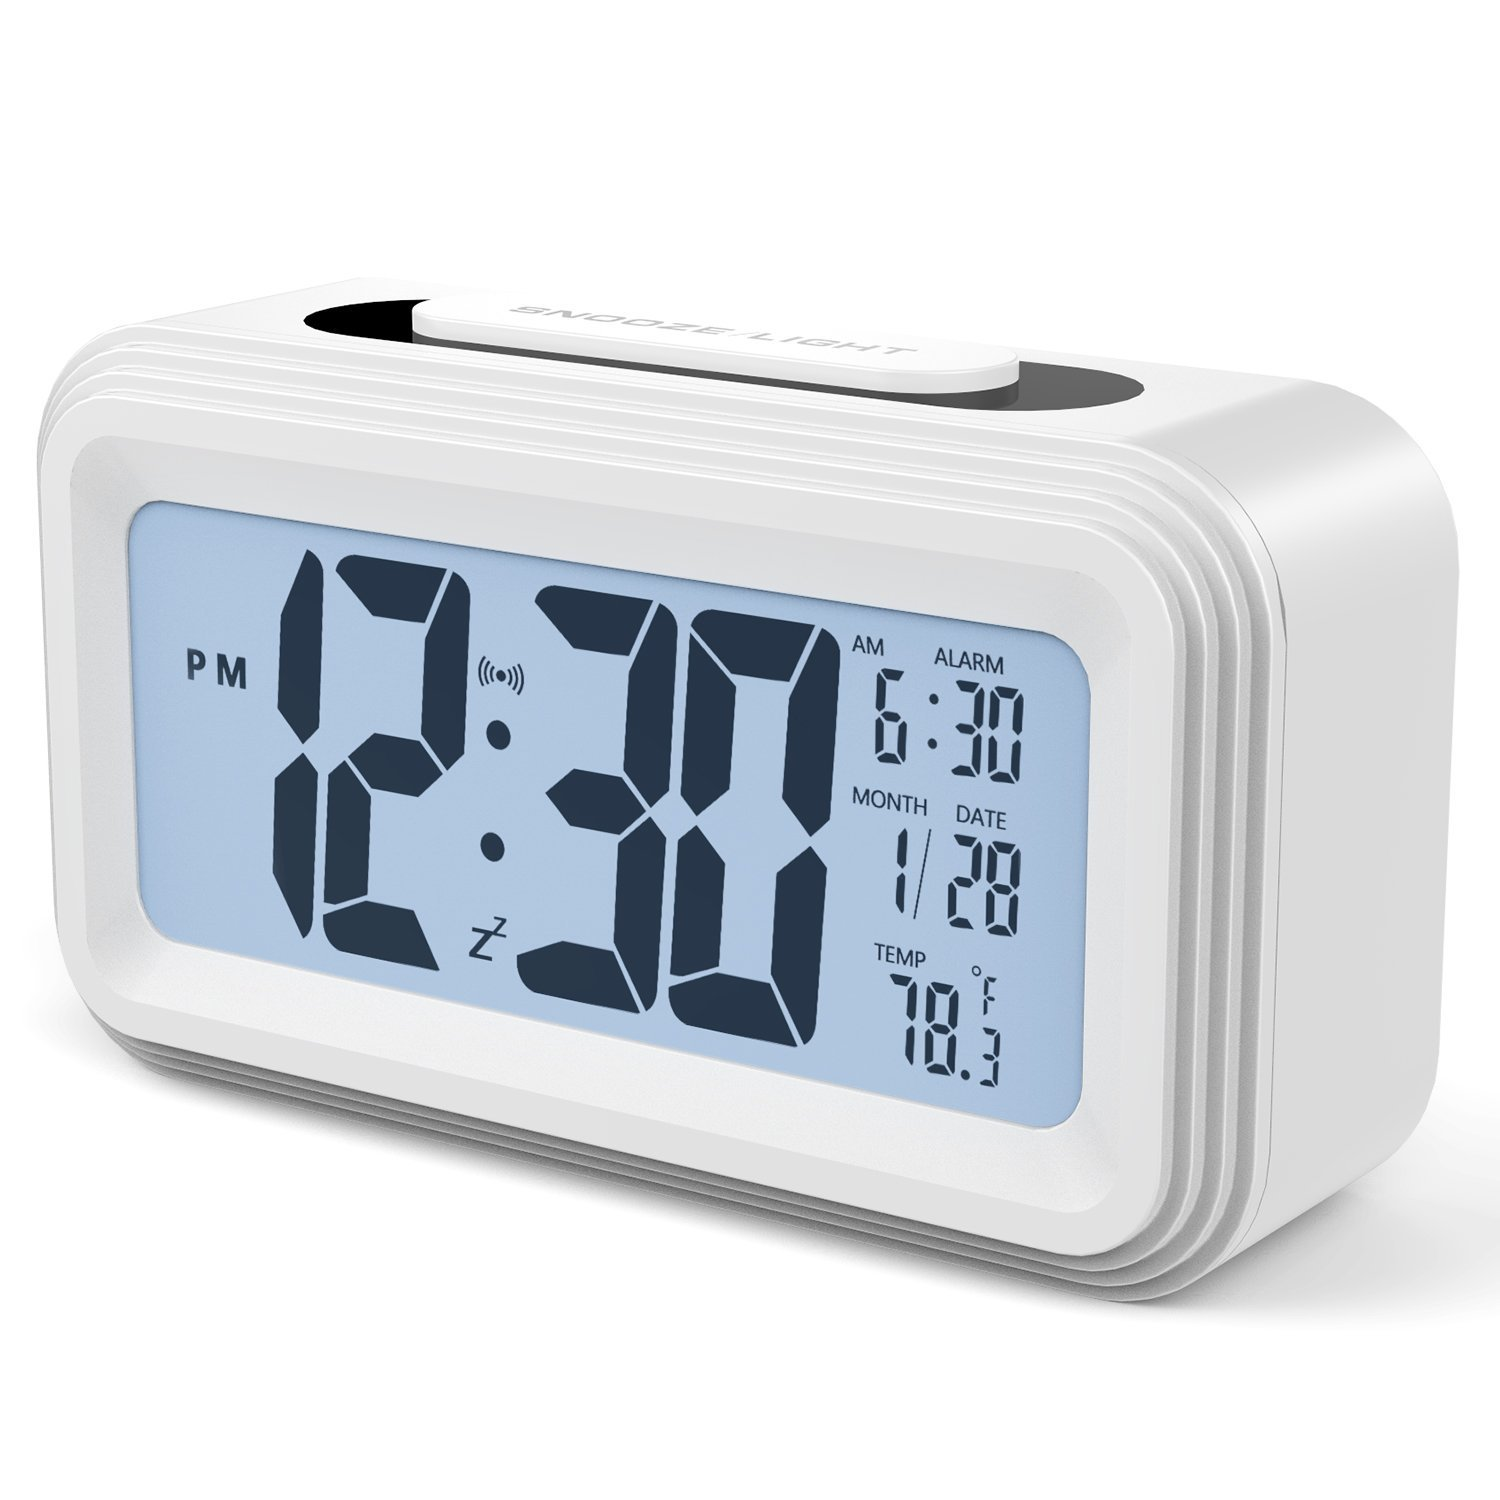 Bedside Non Ticking Alarm Clock, Battery Powered Bedside Clock Silent Simple to Set alarm clock travel with Nightlight Protect the Eyes, Analog Alarm Clock for Bedside Nightstand (A-White) Timere